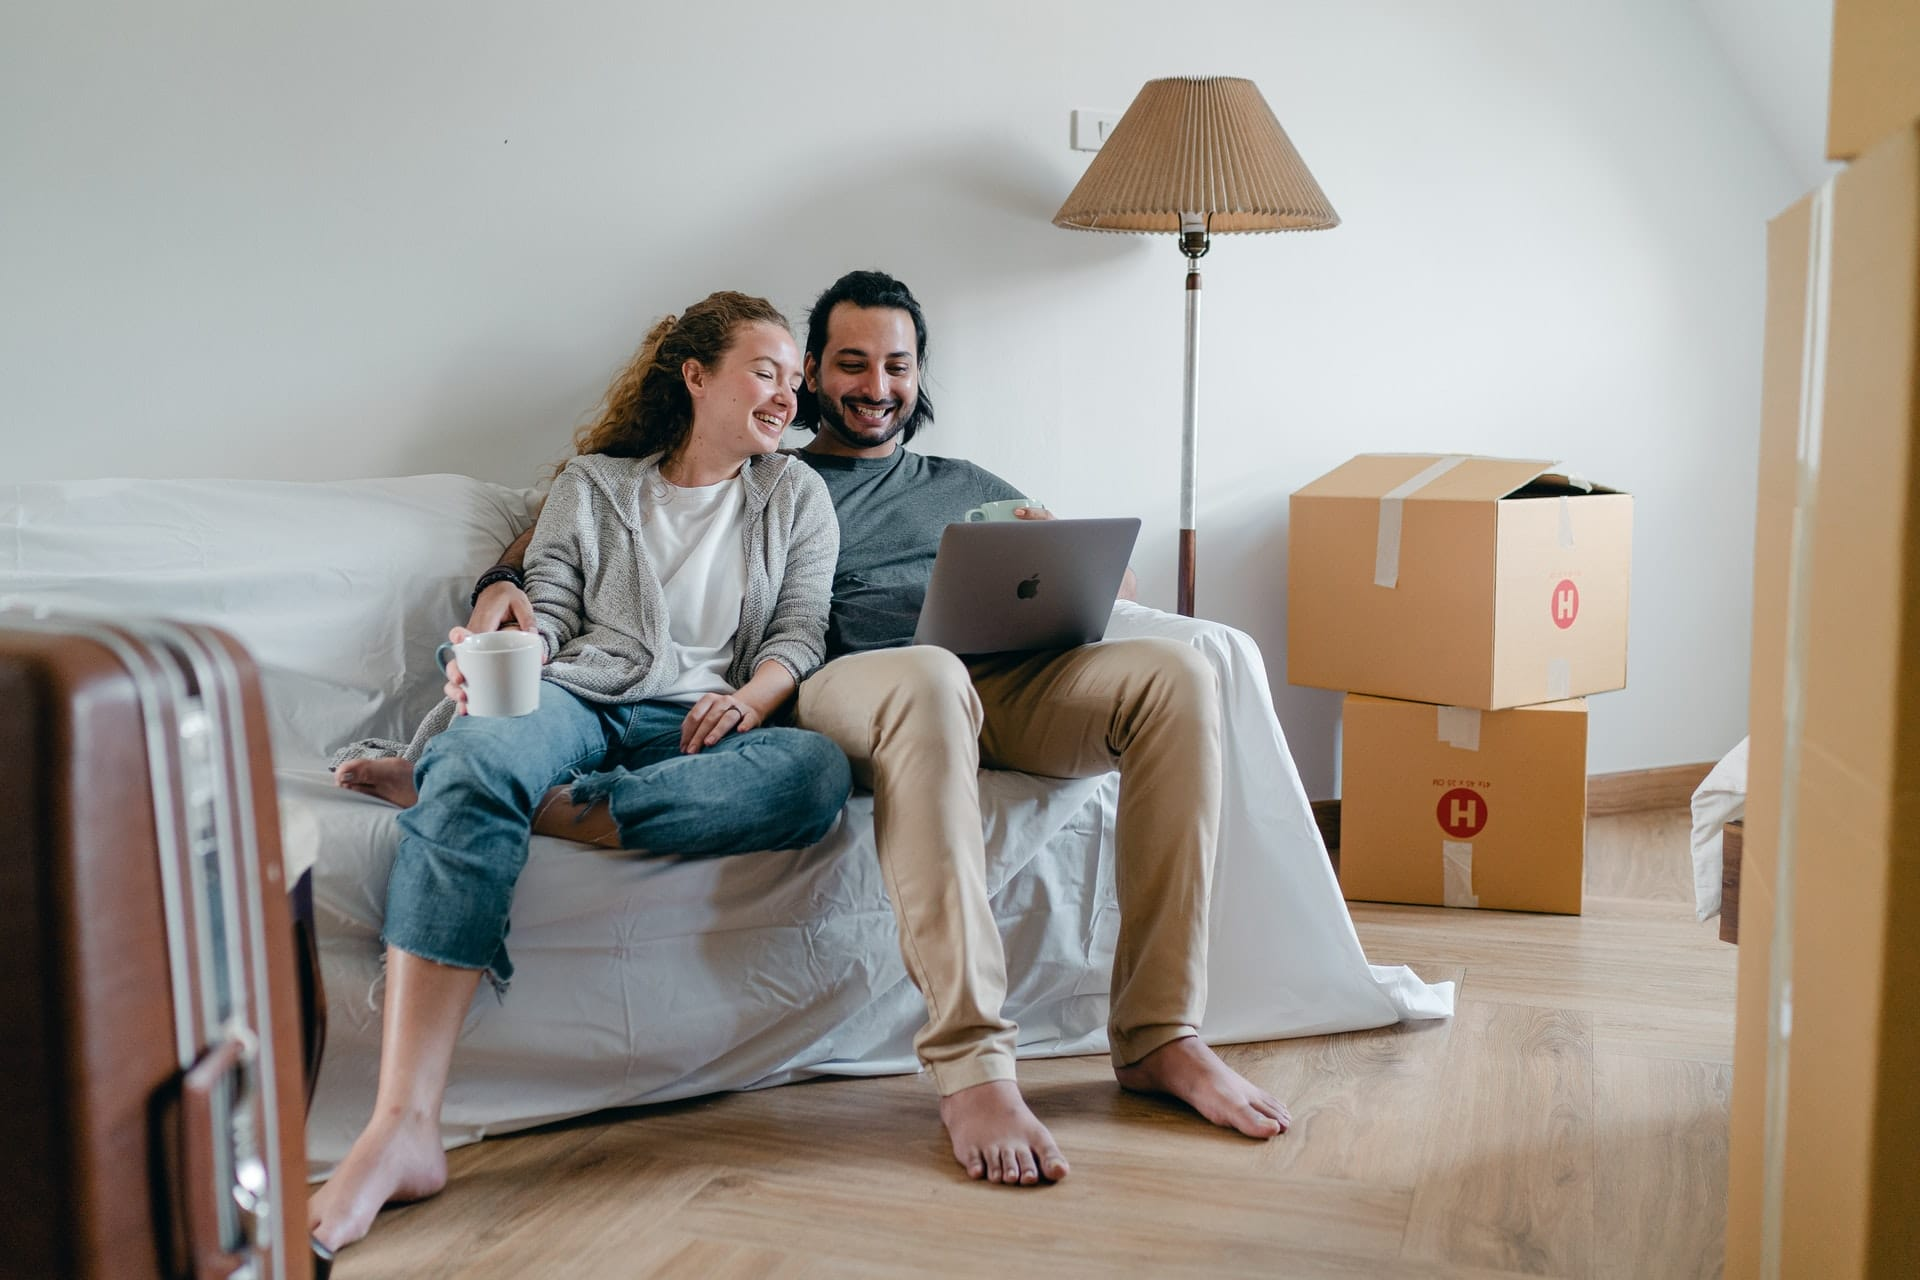 man and woman sitting around boxes